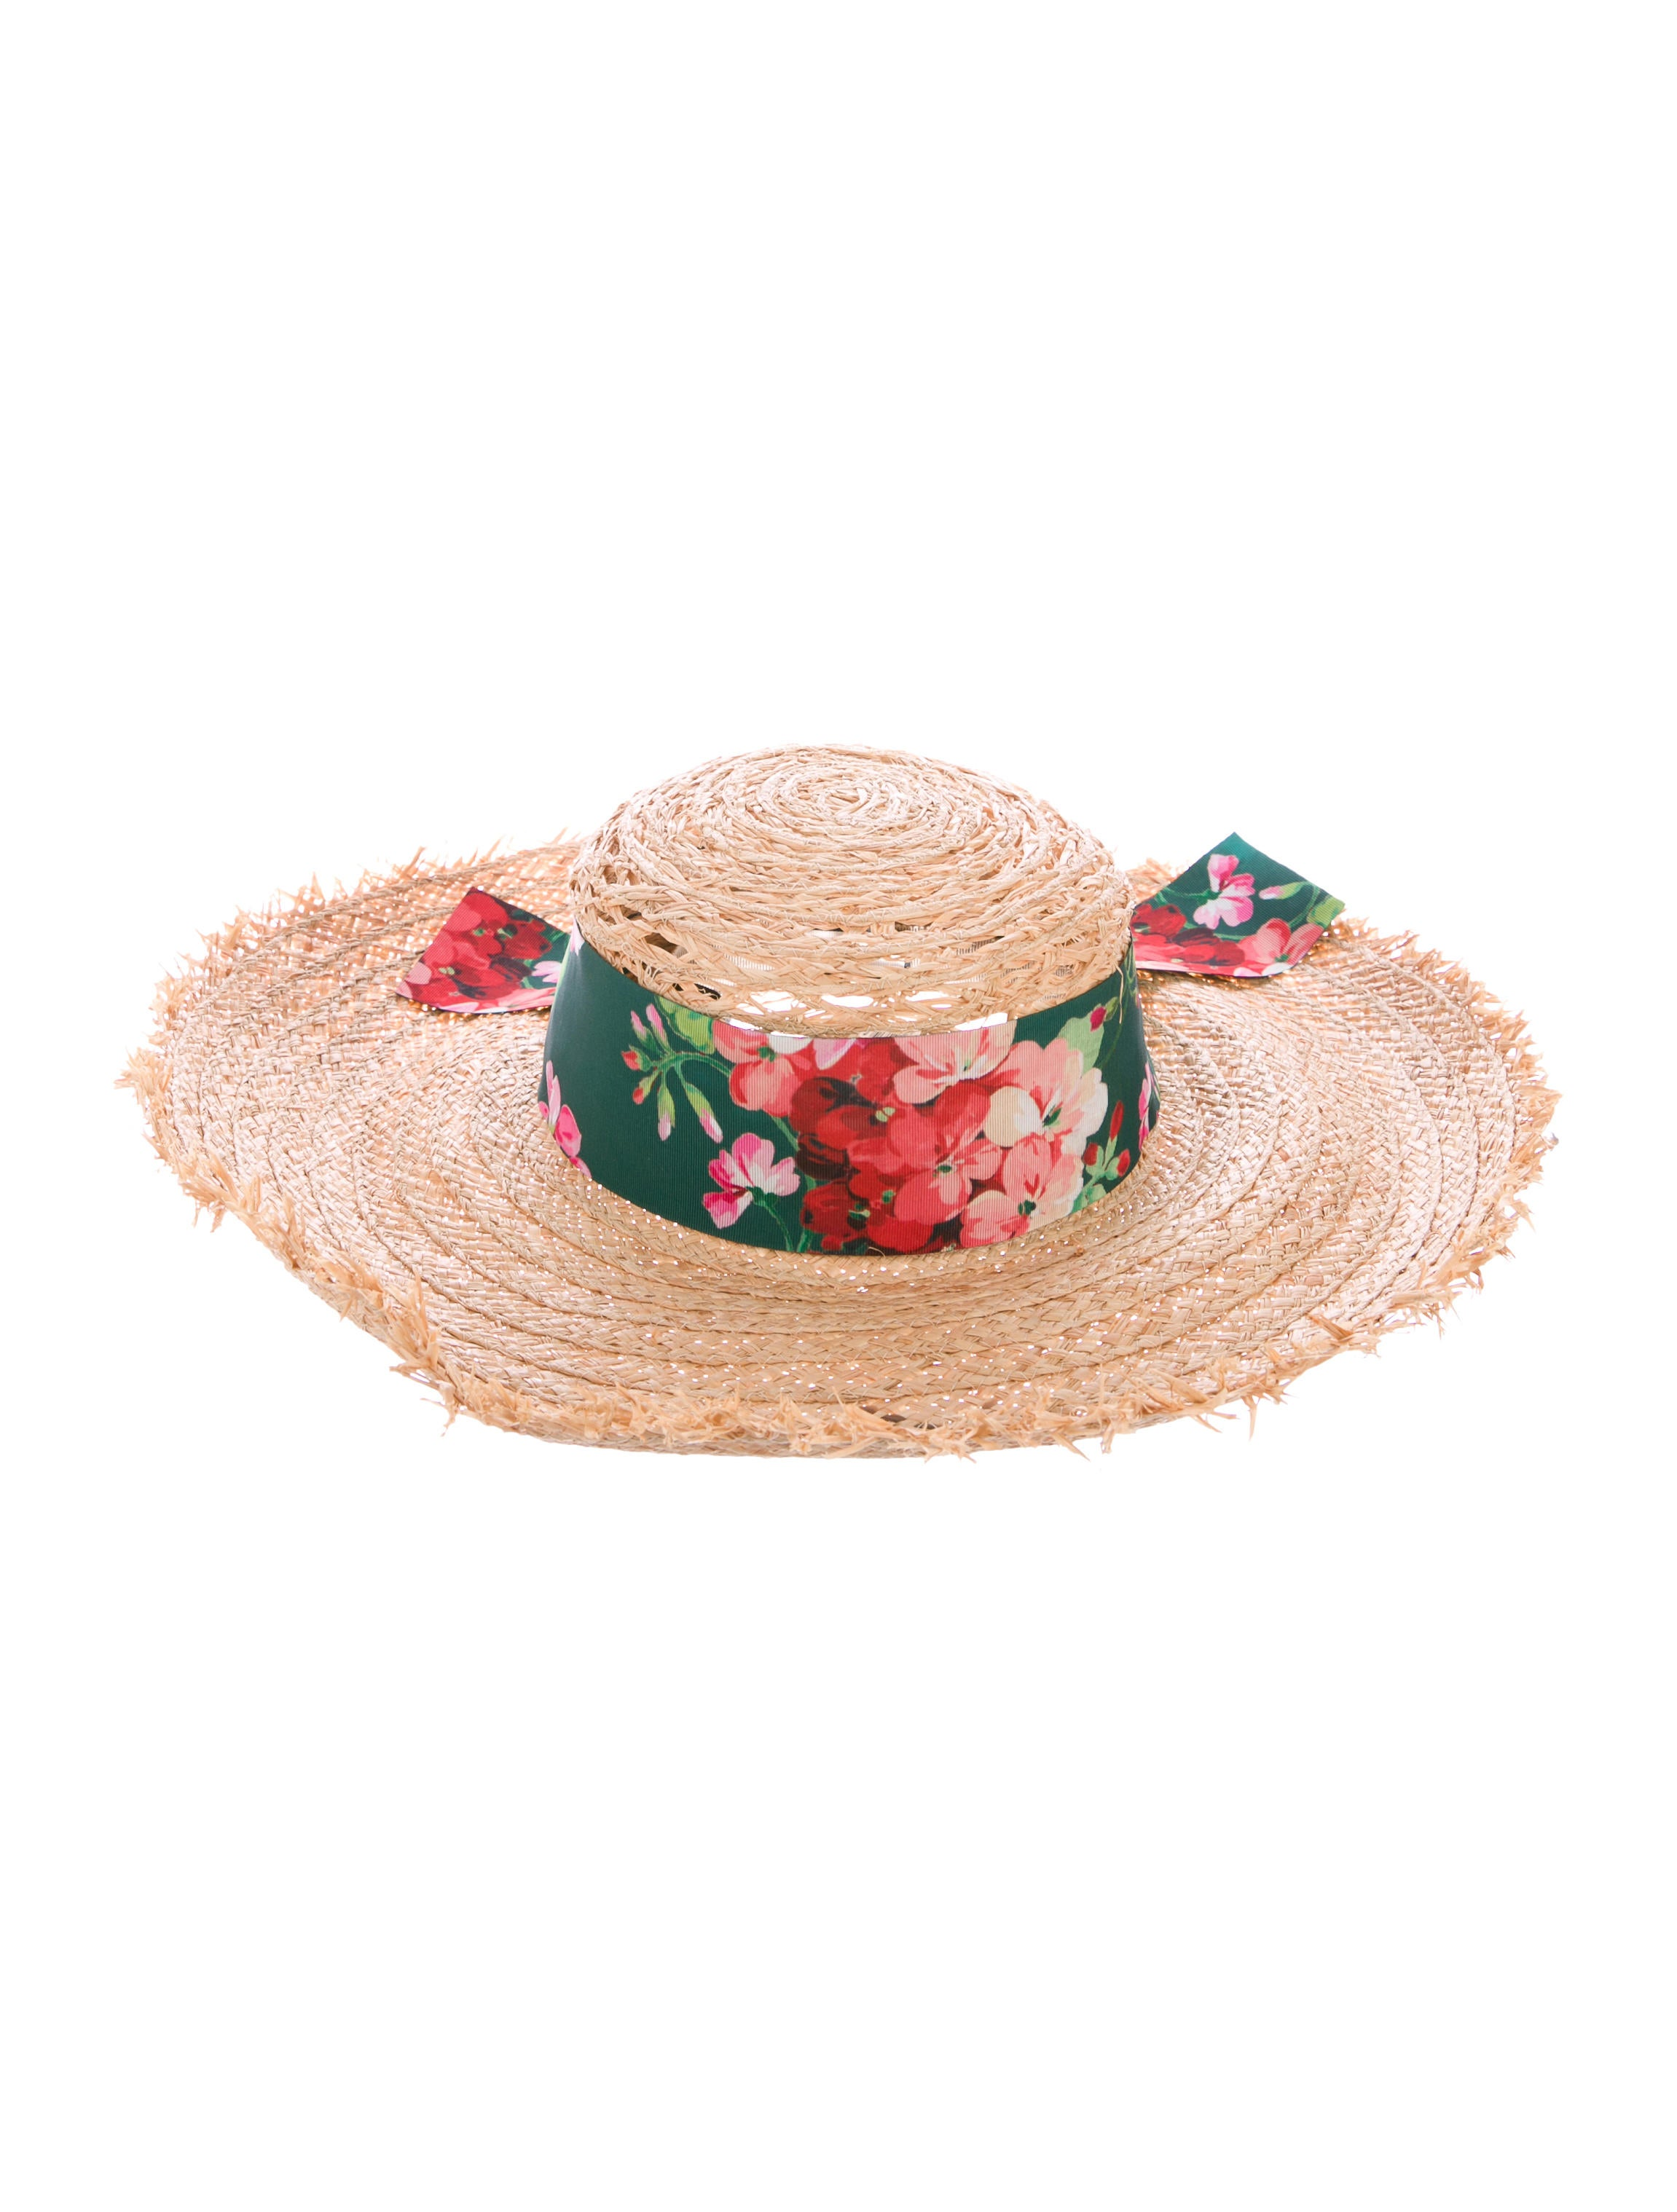 303a3de3d51 Gucci 2016 GG Blooms Hat w  Tags - Accessories - GUC174316